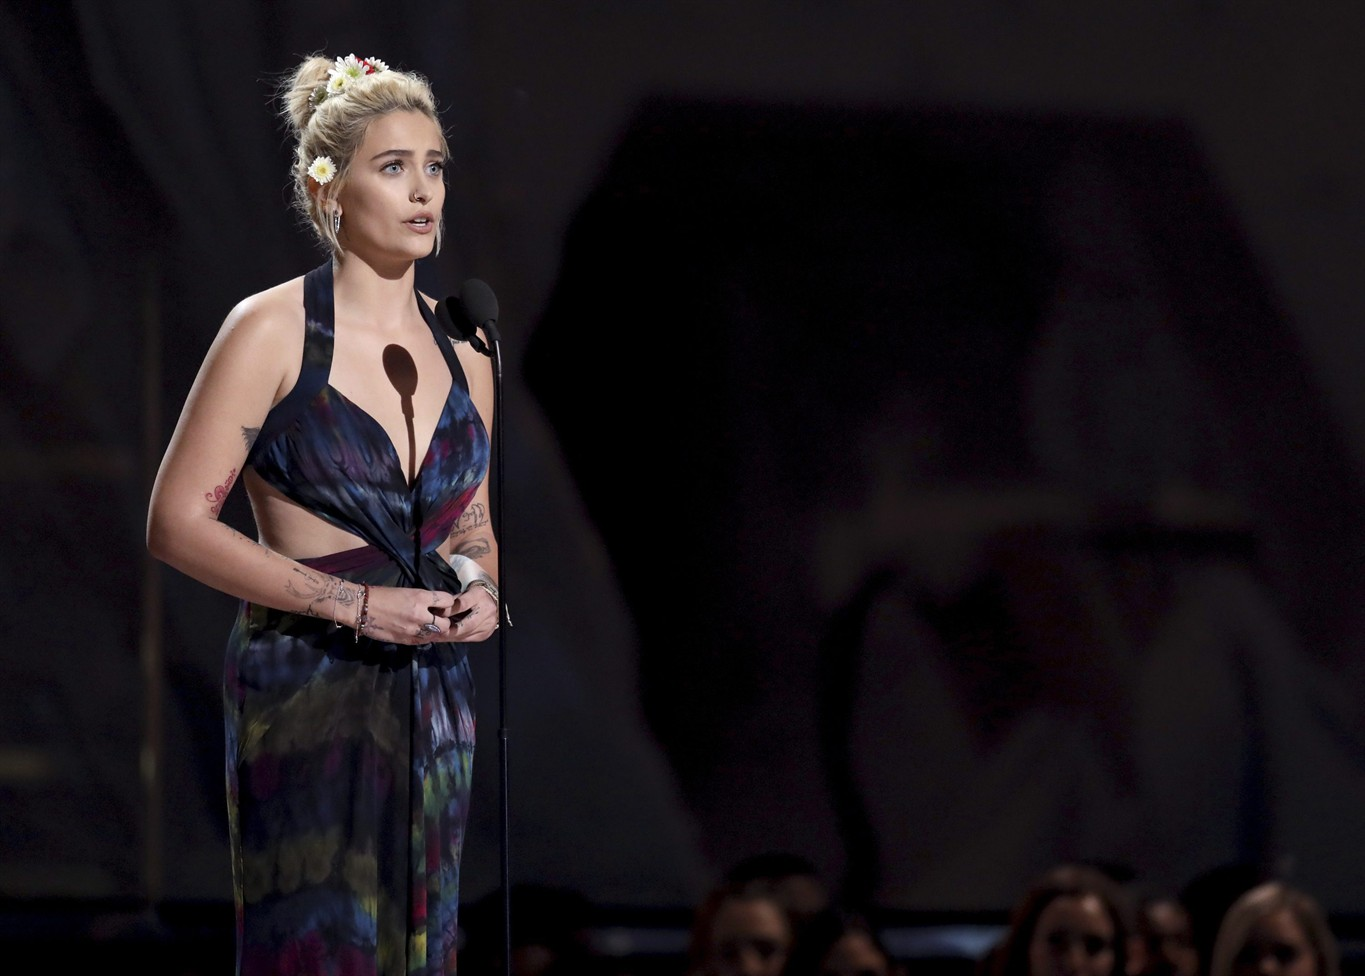 michael jackson s daughter takes to grammys stage 660 news 660 news